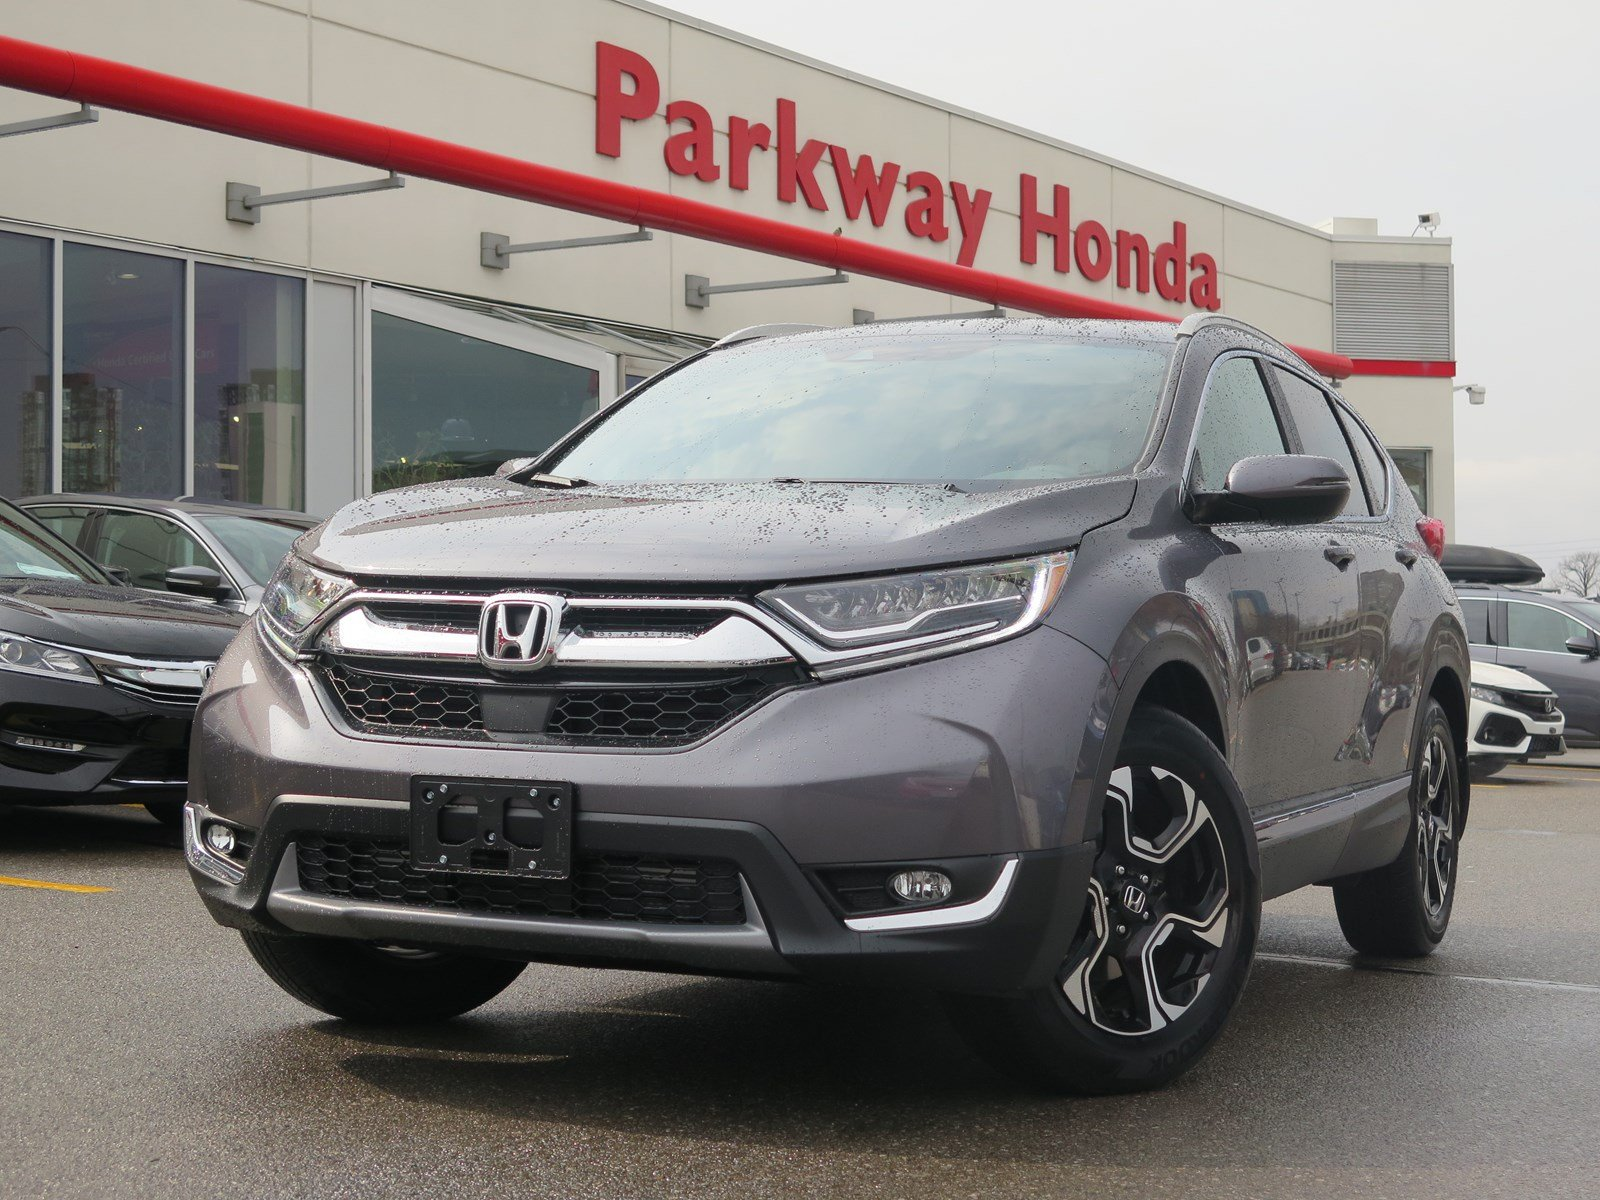 Pre-Owned 2017 Honda CR-V Touring - Demo ($750 incentive available)